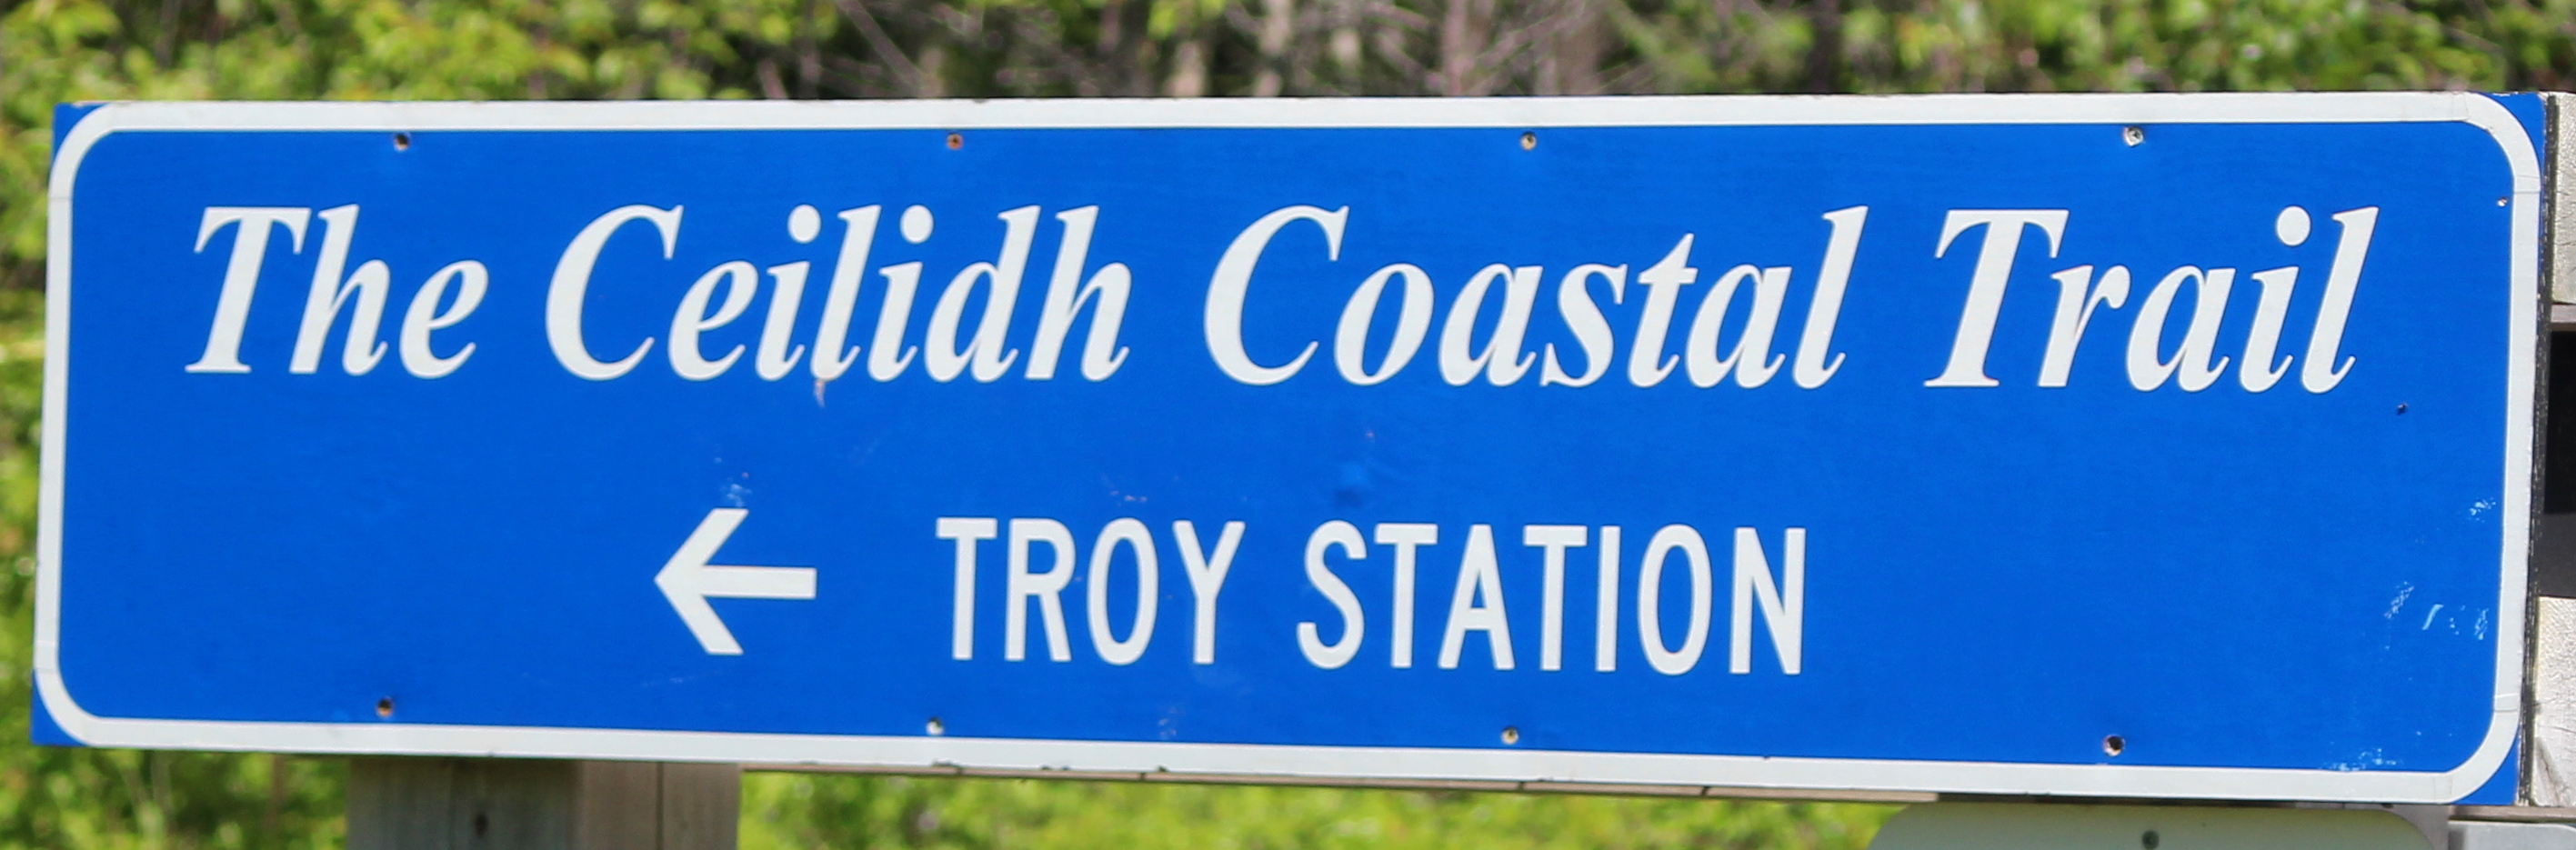 The trailhead at Troy Station - part of the Ceilidh Coastal Trail